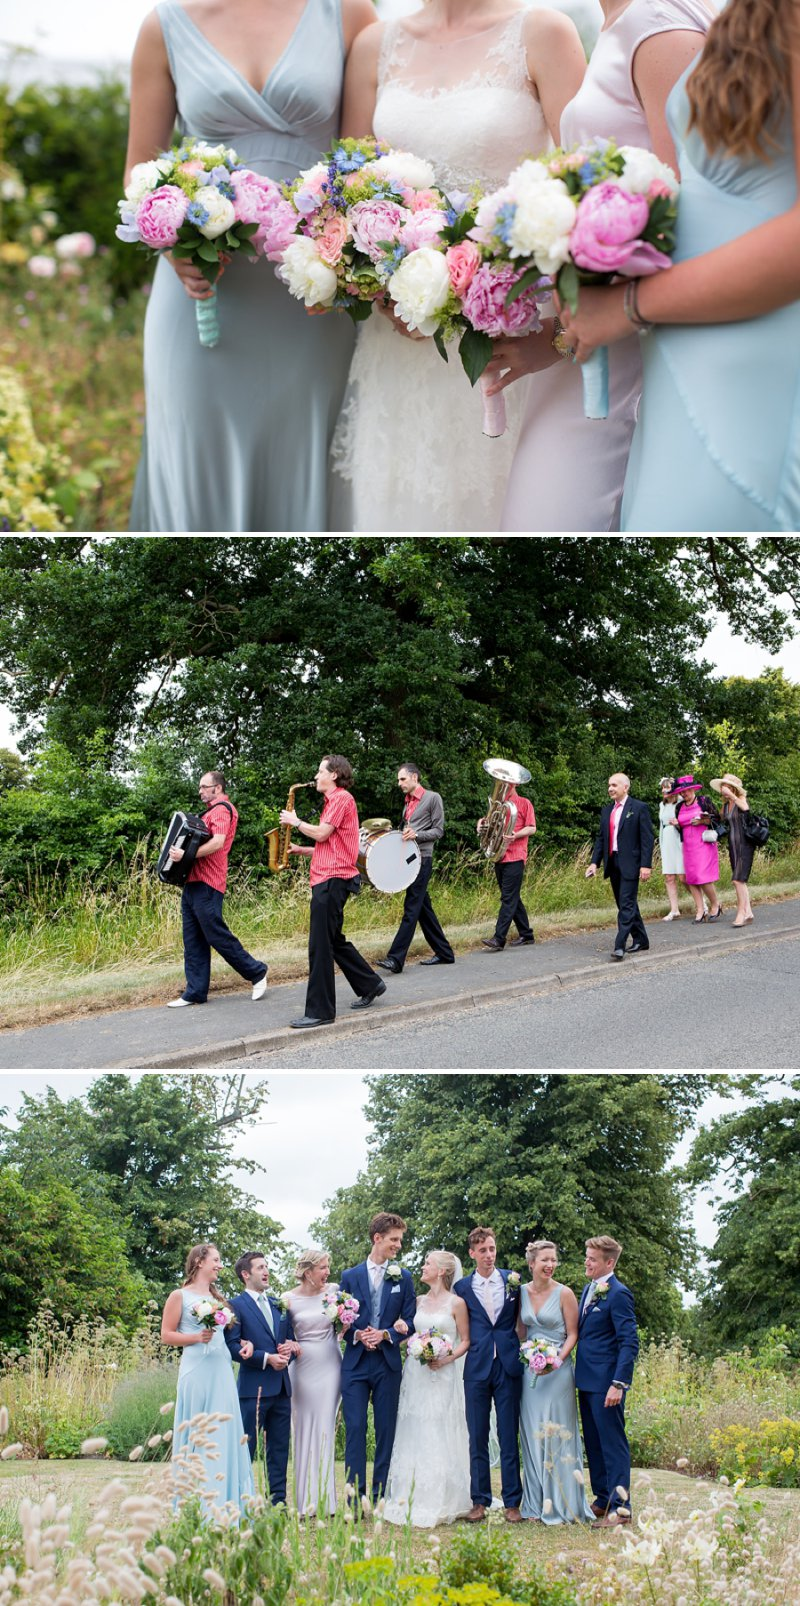 Elegant Country Garden Wedding At Narborough Hall Gardens In Norfolk With Bride In Pronovias Gown And Groom In Reiss Suit With Bridesmaids In Pastel Tone Ghost Dresses And Images From Katherine Ashdown 5